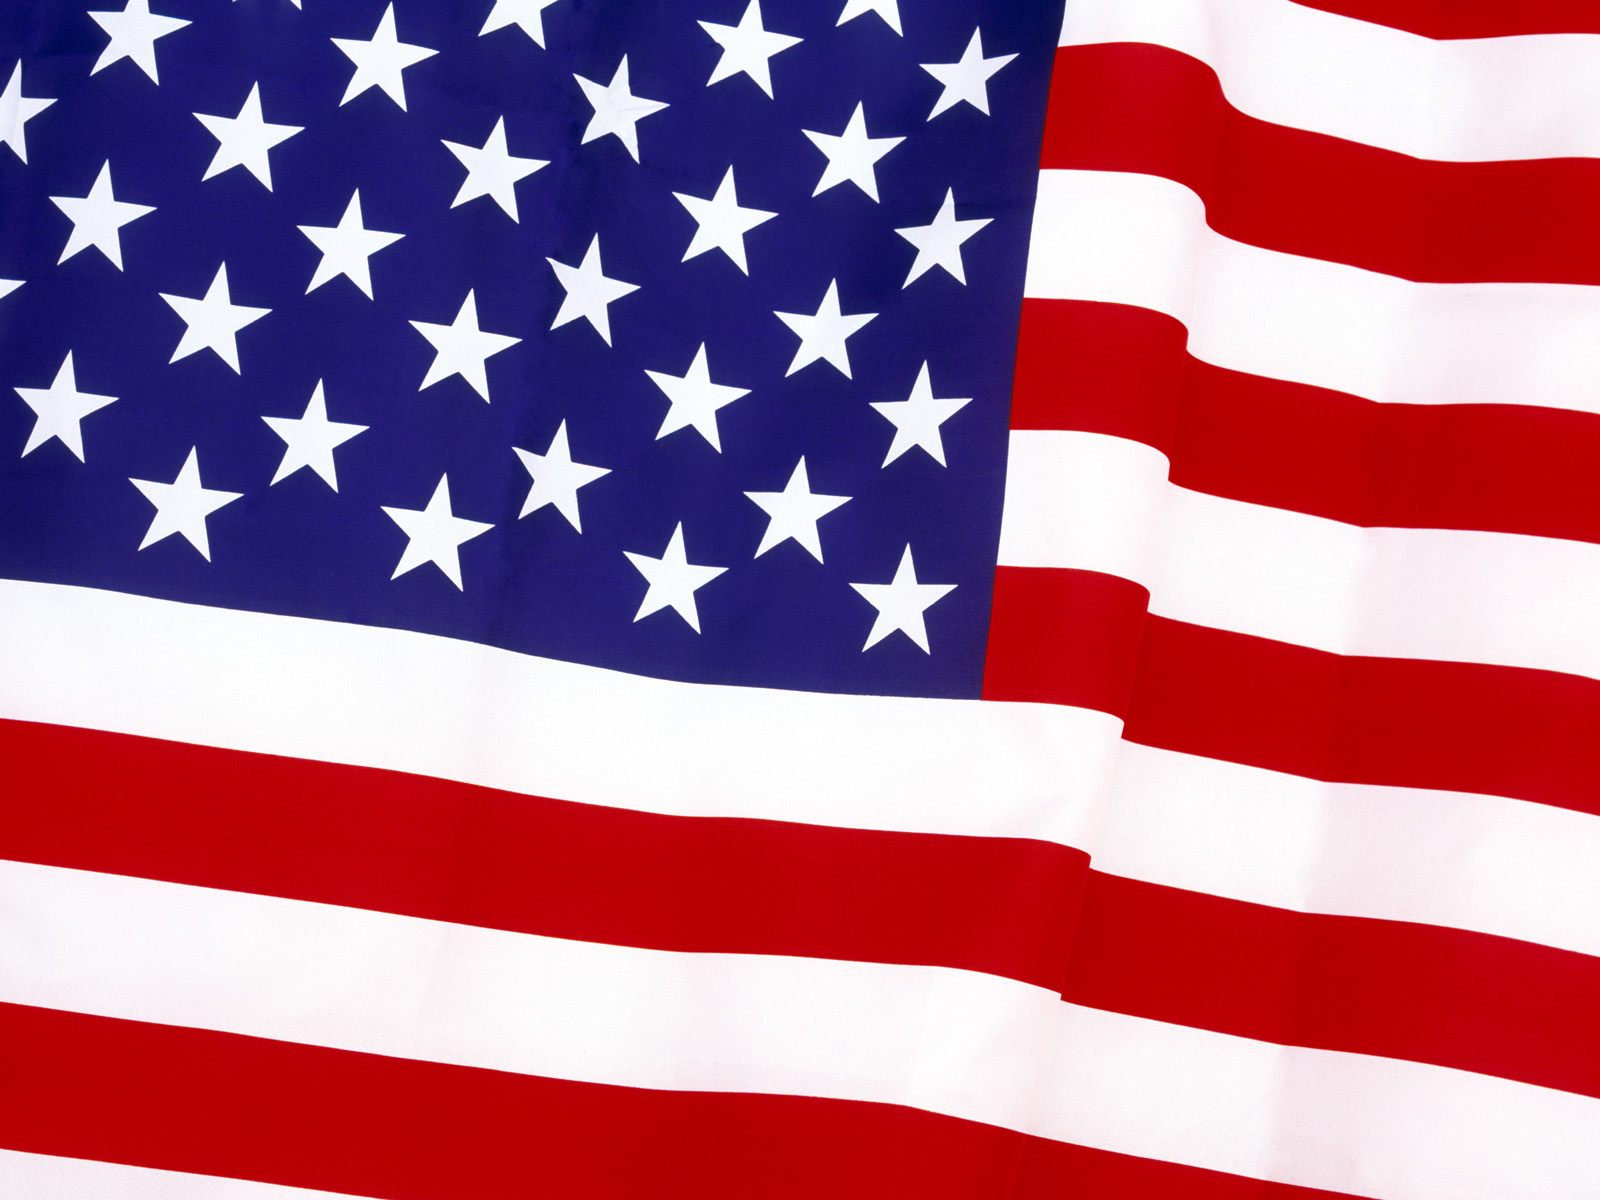 United States of America Flag HD Wallpaper United States of America 1600x1200